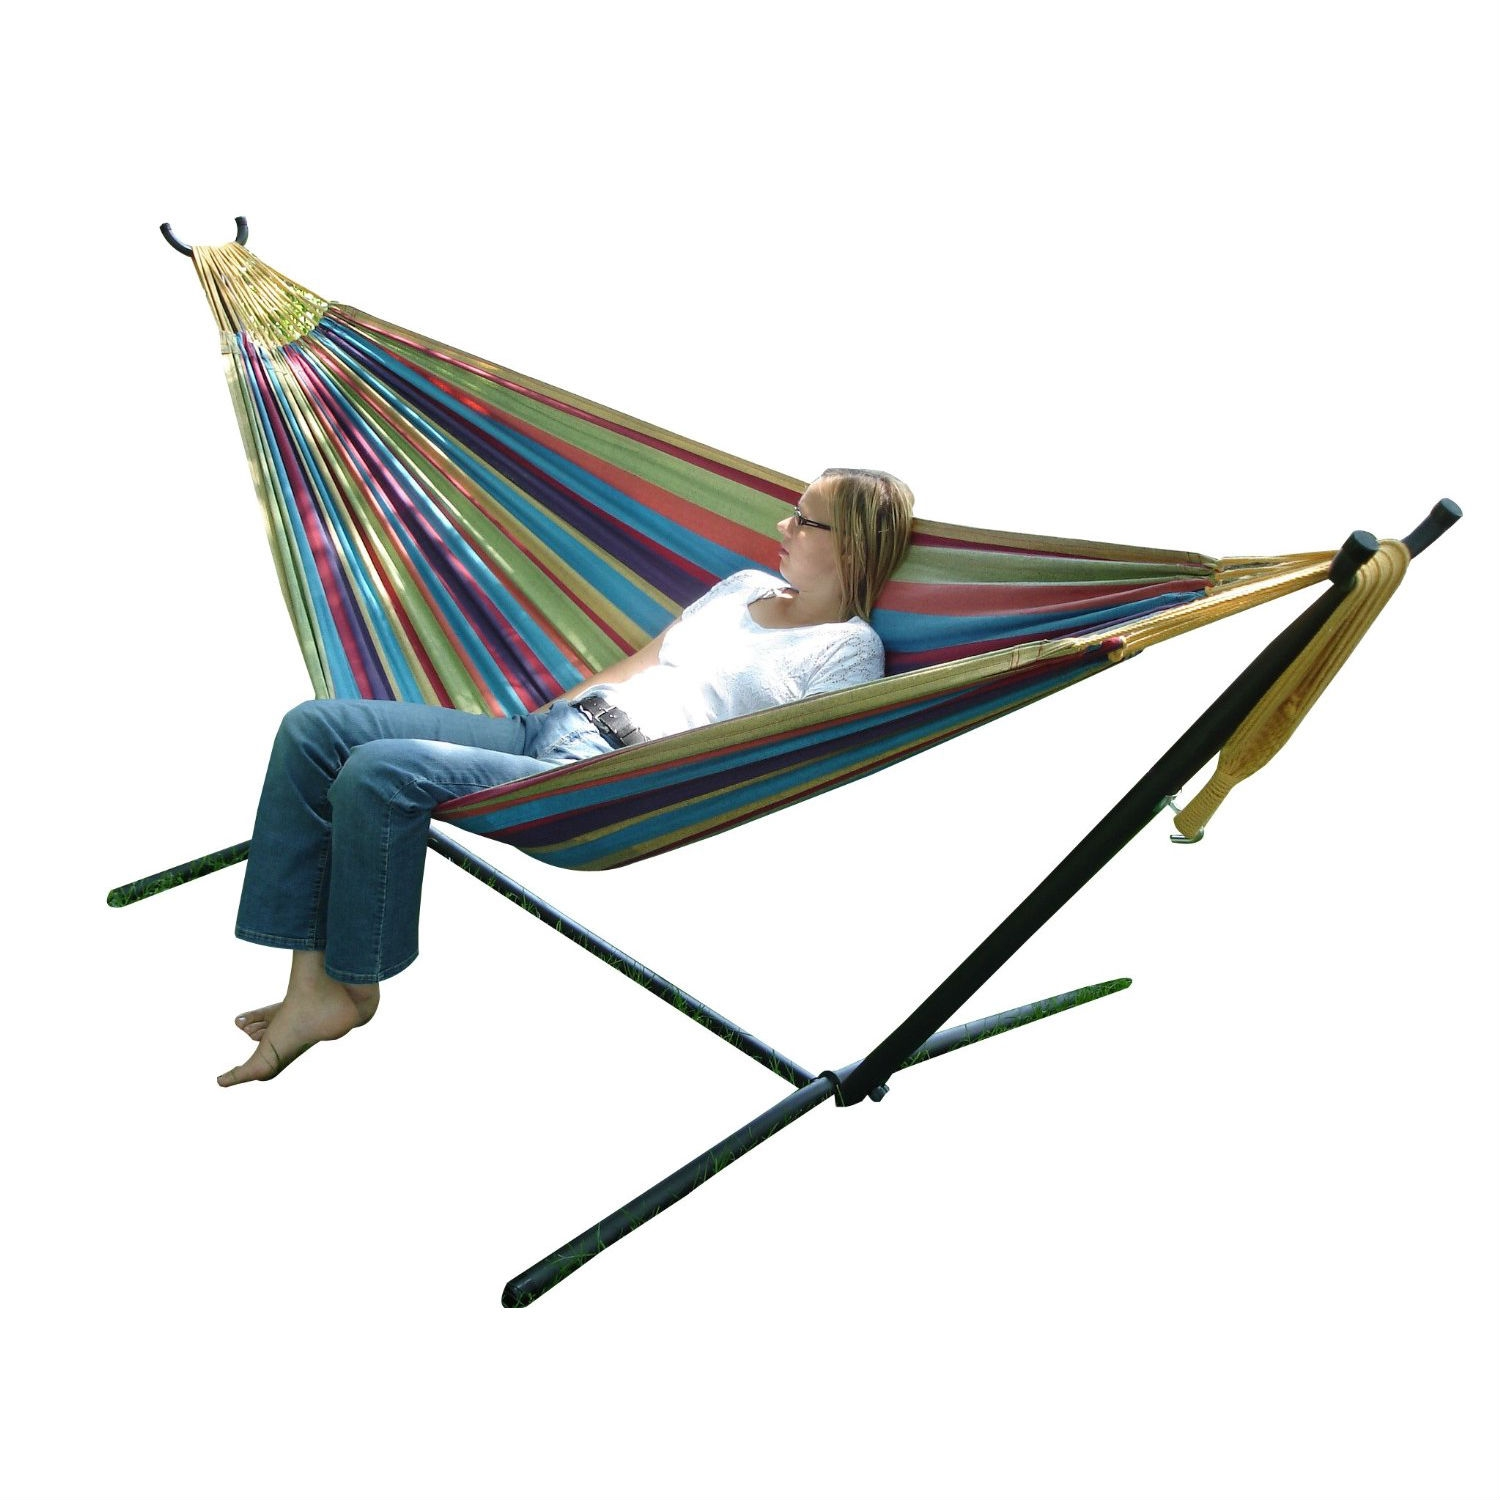 Tropical Fabric Double Hammock with 9-Foot Steel Stand, VDHWS133 :  A top choice for couples lounging, this Tropical Fabric Double Hammock with 9-Foot Steel Stand comes with a space-saving steel stand and a double hammock in your choice of cotton or Sunbrella fabric. You'll enjoy the freedom that the space-saving 9-foot stand provides by allowing you to set up your hammock in the most convenient location -- no longer having rely on tying your hammock to two trees. And both the Sunbrella and cotton hammocks accommodate two adults. The well-designed heavy duty steel stand gives you a sense of security to enjoy your slumber, and it's ideal for this non-spreader bar style of hammock. Created for long life and stability, it's made from heavy gauge steel and it easily assembles in minutes -- no tools required. Weighing in at a total of 35 pounds, this entire hammock combo can be easily maneuvered around your backyard or patio. Powder coated in an oil rubbed bronze finish, the stand measures 9 feet in length and all ends are finished with plastic caps. It's also easy to break down for storage or travel, and it comes with its own carrying case.